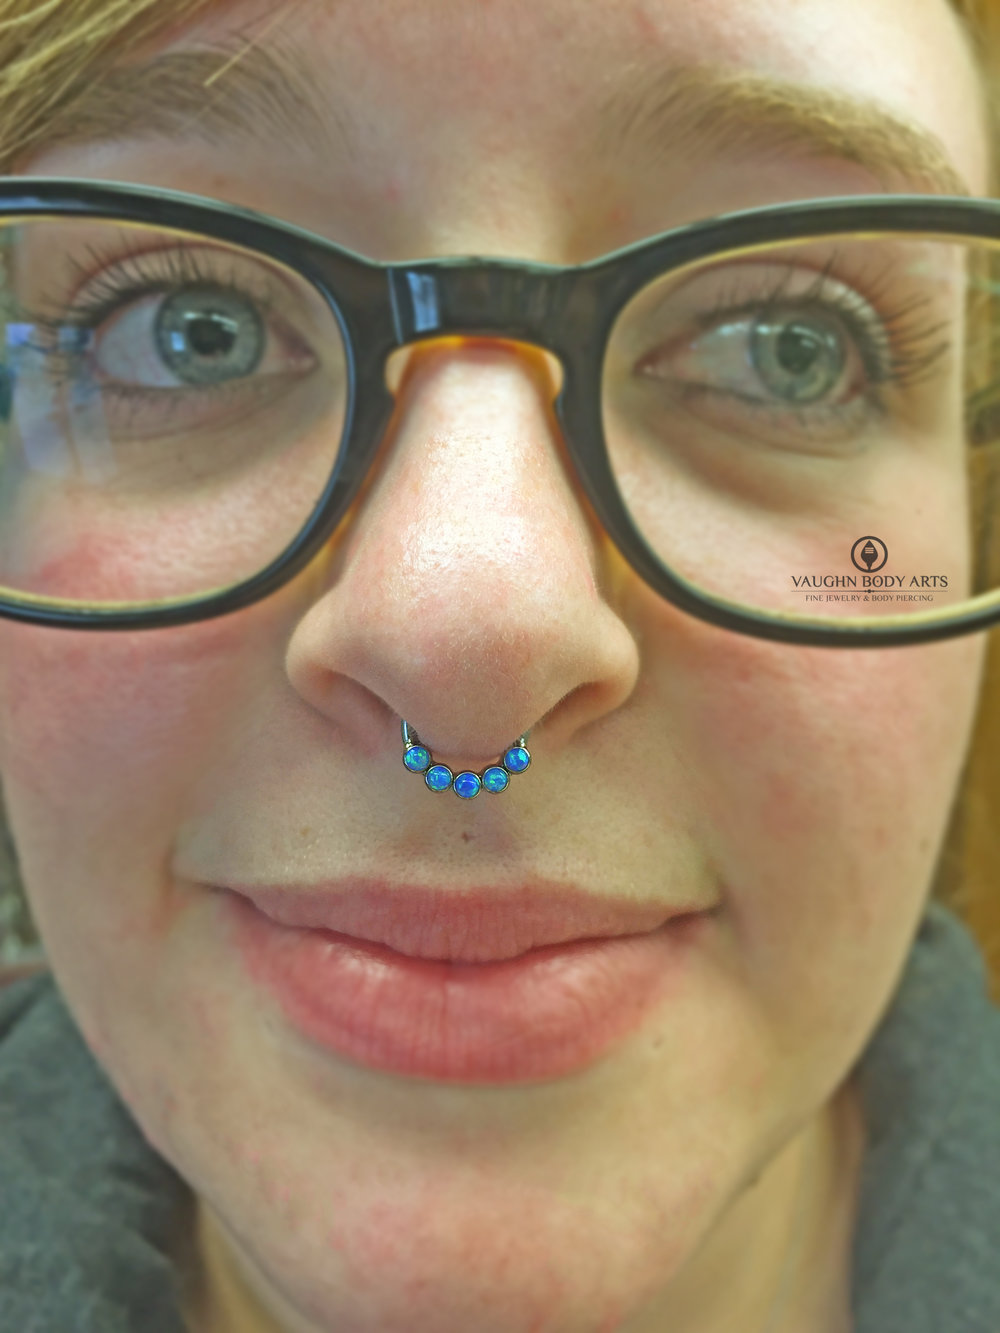 Septum piercing with titanium jewelry from Intrinsic Body.